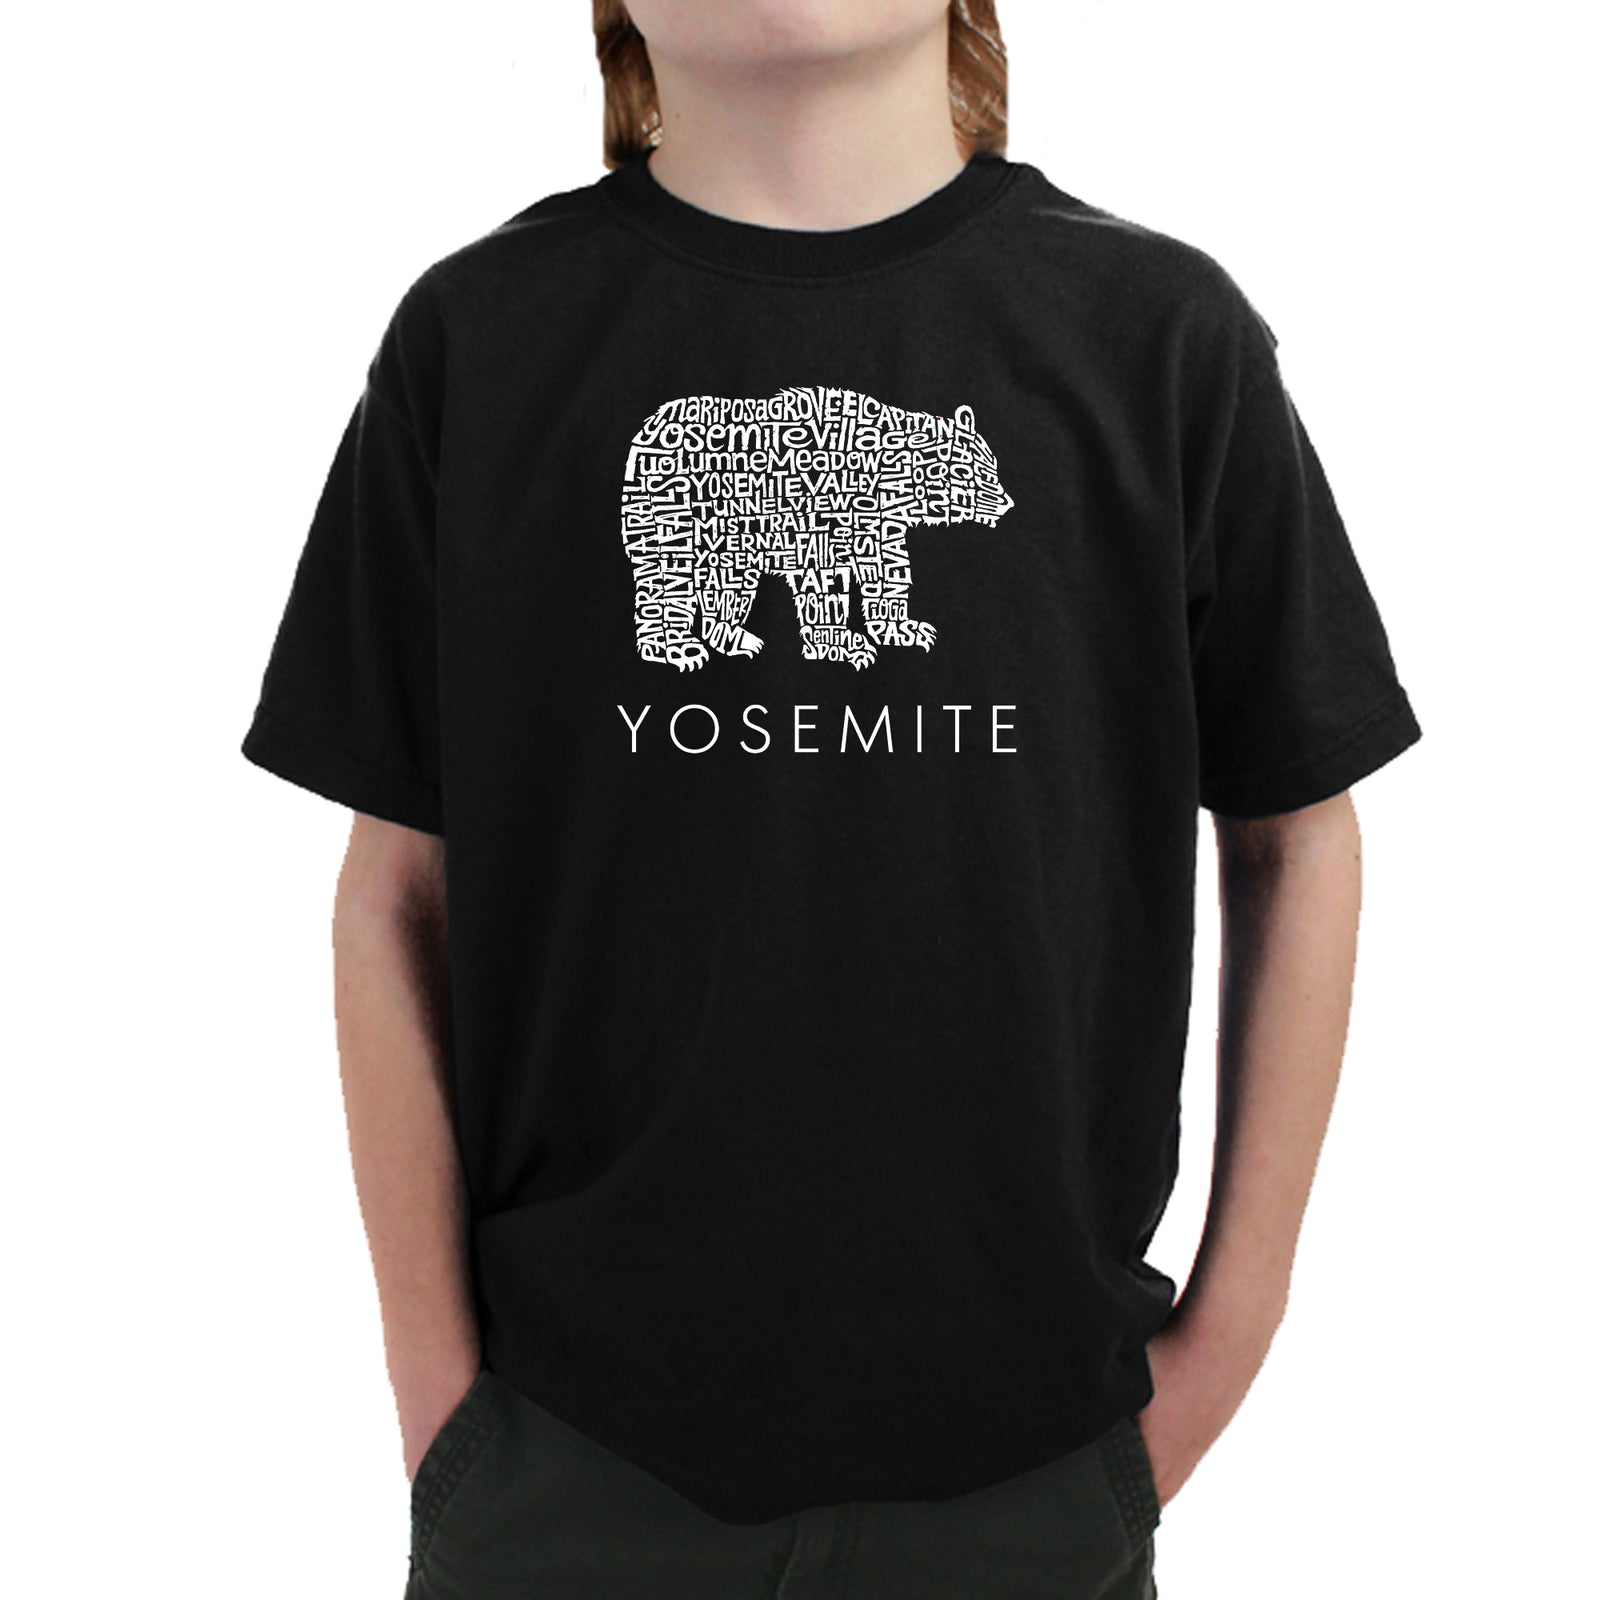 Boy's Word Art T-shirt - Yosemite Bear